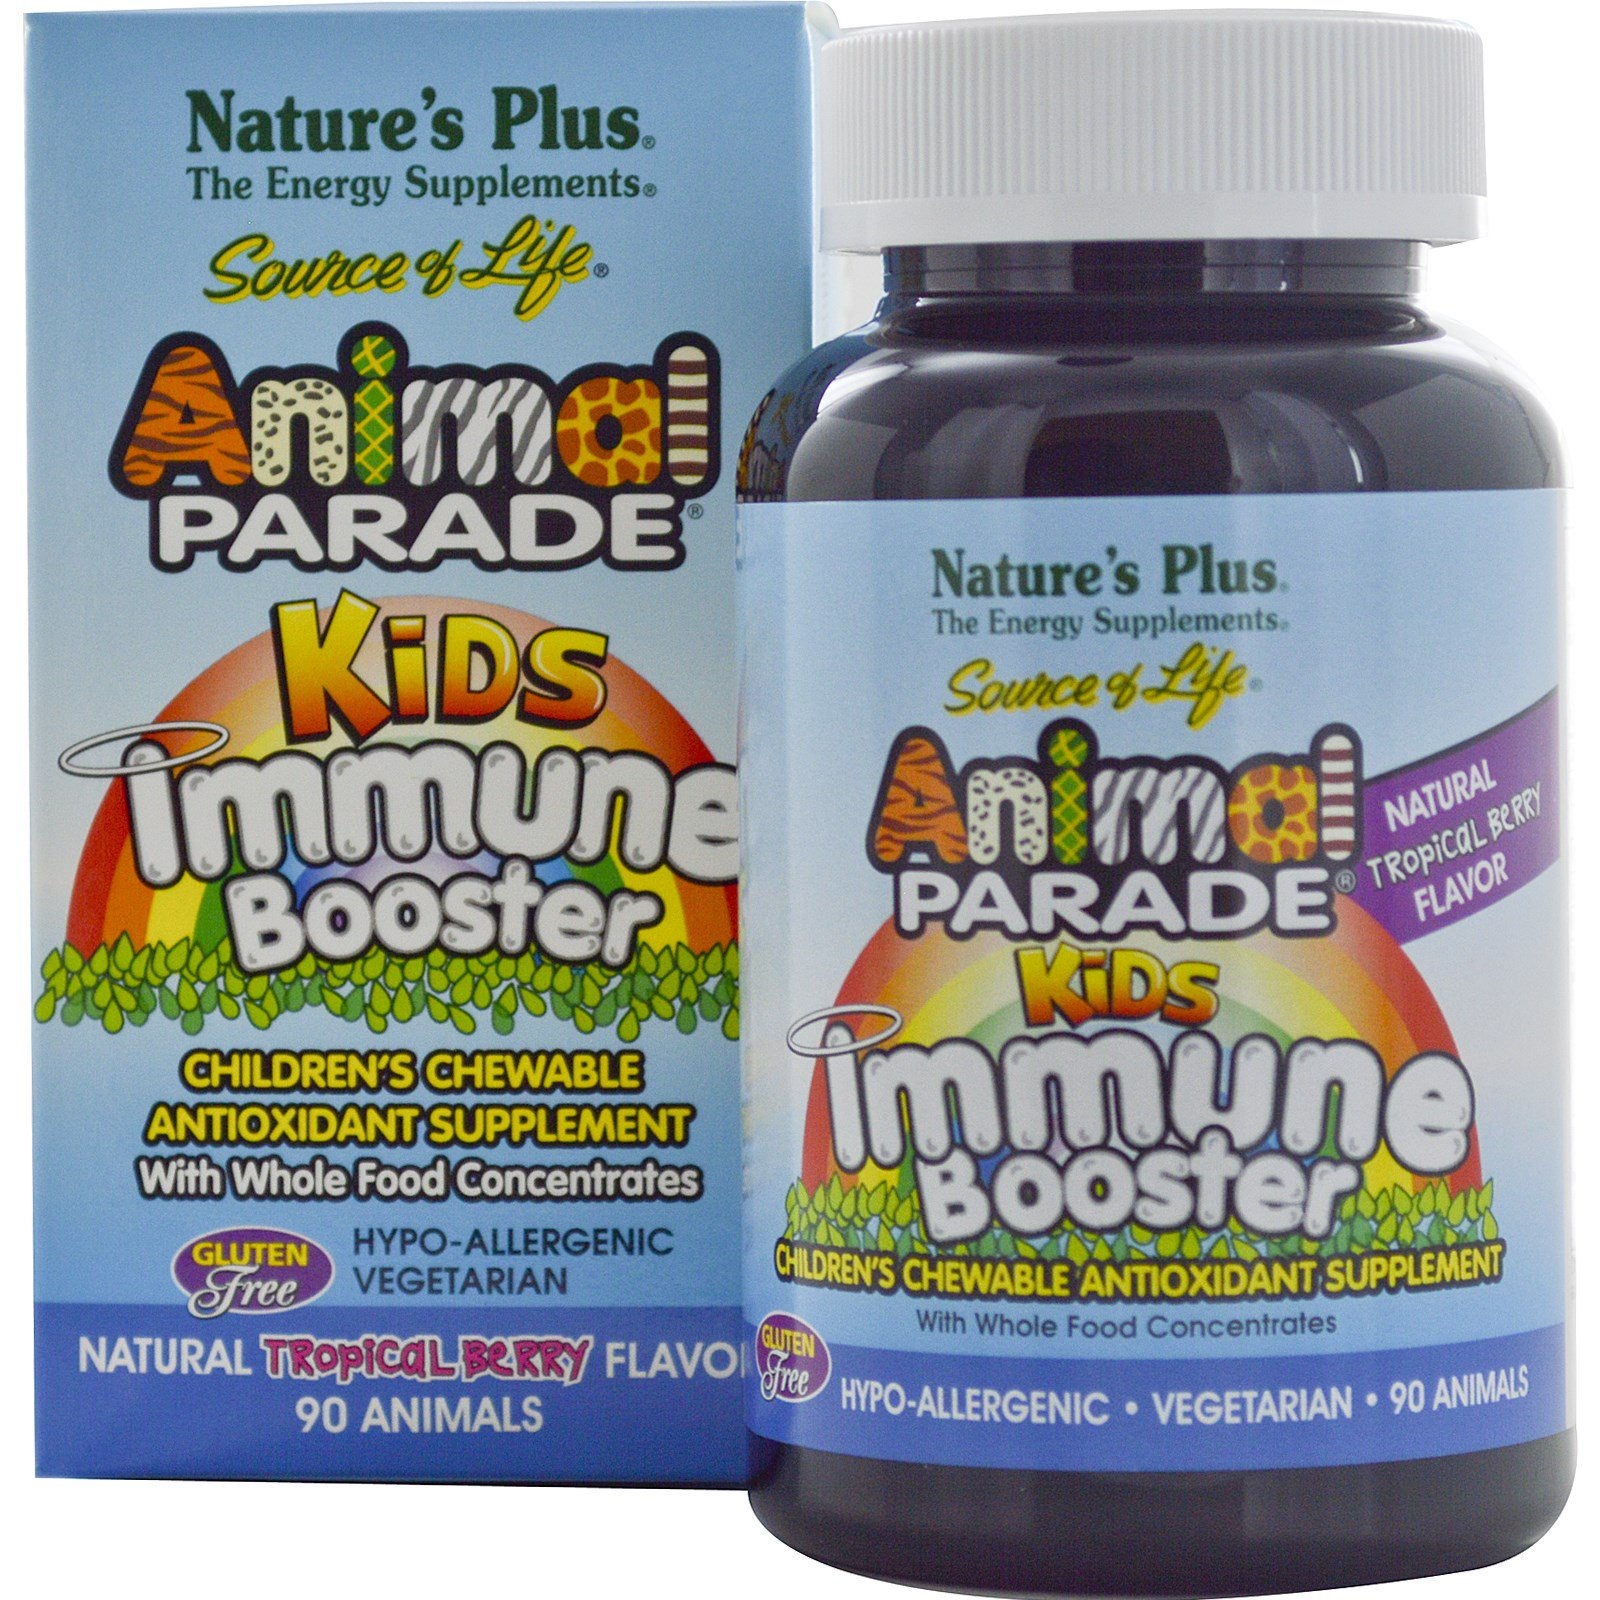 Image of Kids Immune Booster, Natural Tropical Berry Flavor (90 Animals) - Nature's Plus 0097467299788